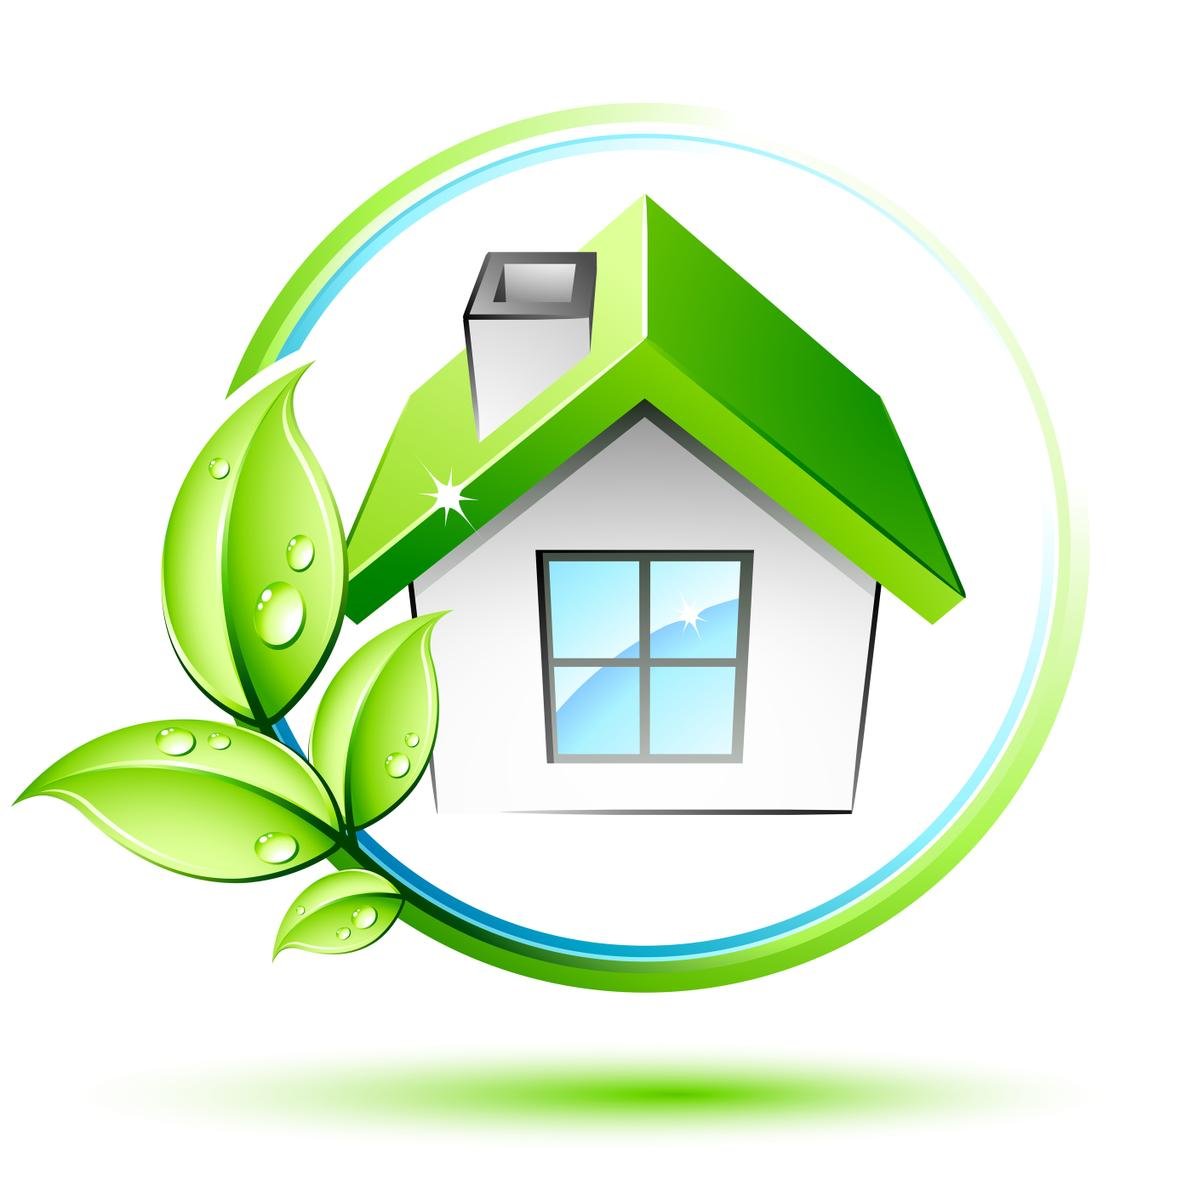 House Cleaning Company Logos Images amp Pictures Becuo